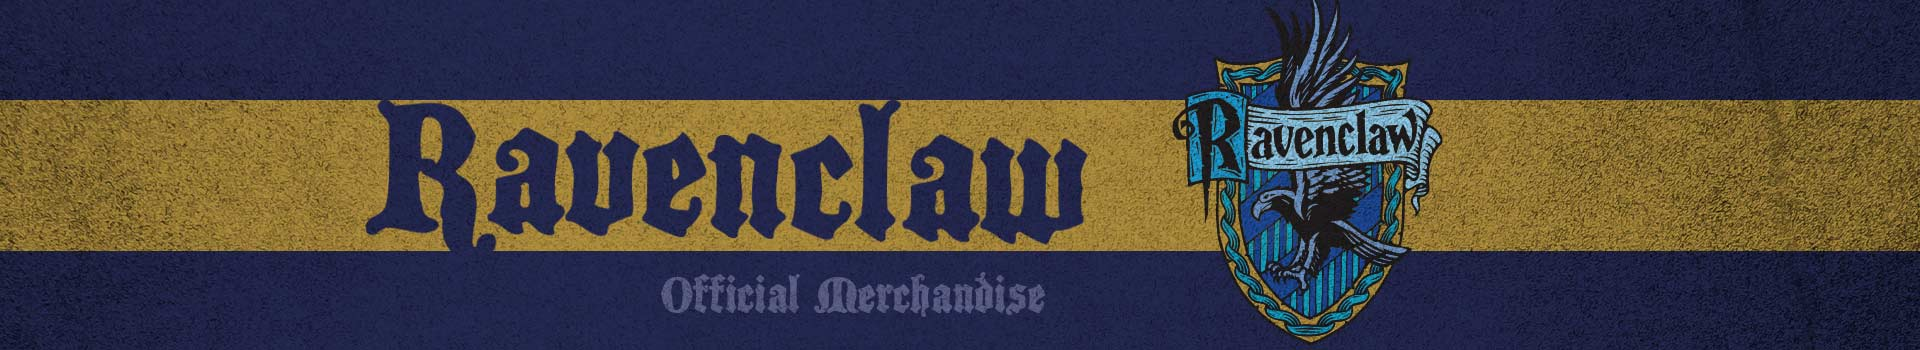 Ravenclaw - Official Merchandise